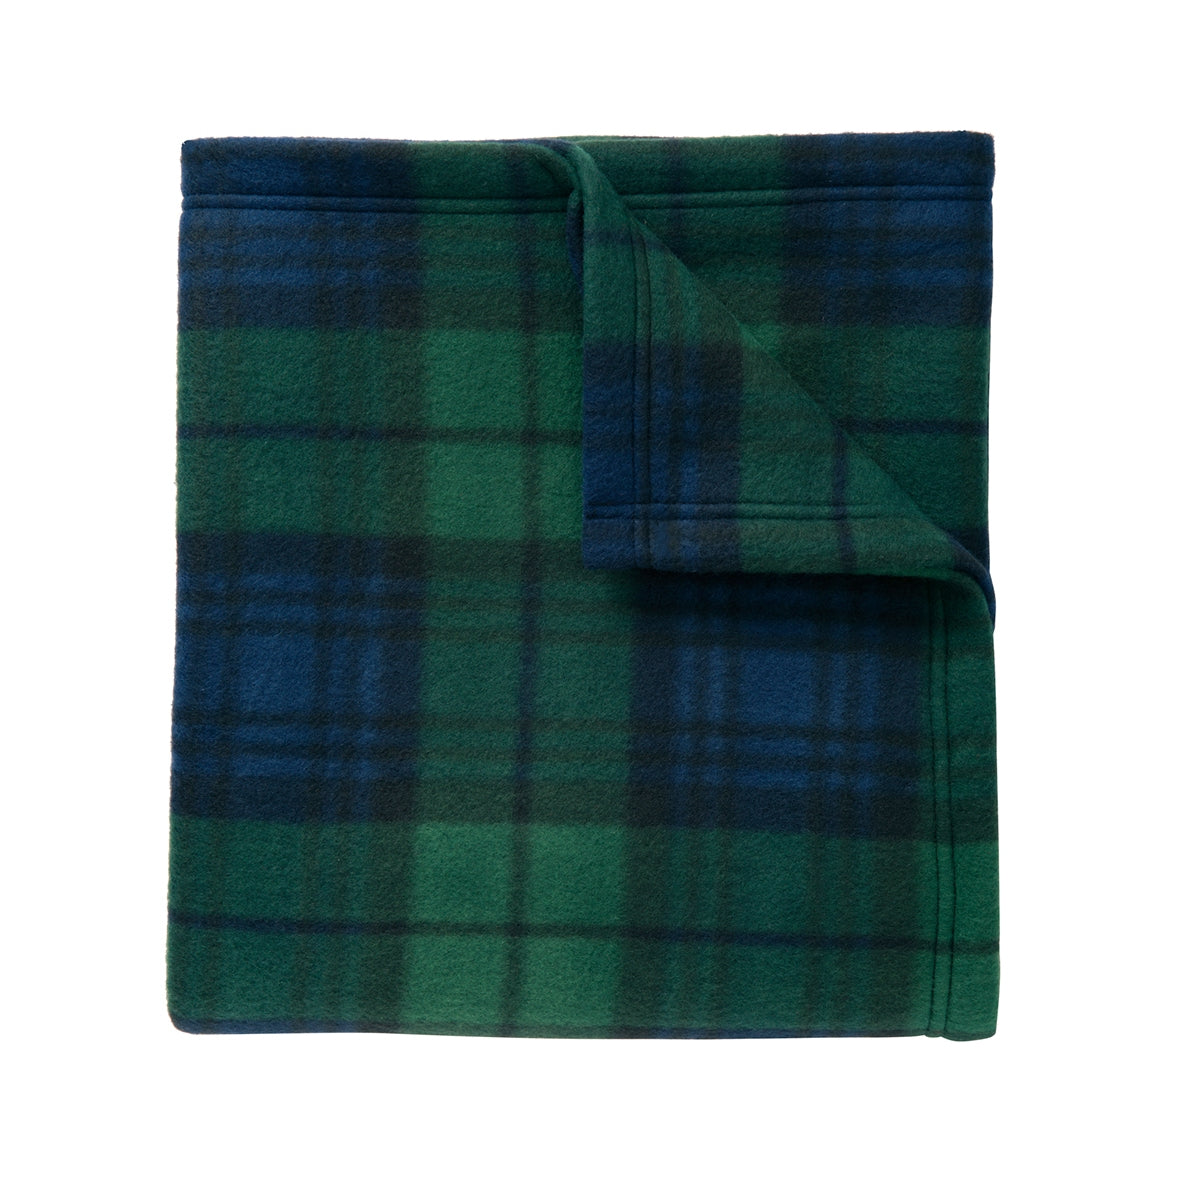 Core Printed Fleece Blanket Black Watch Plaid Print